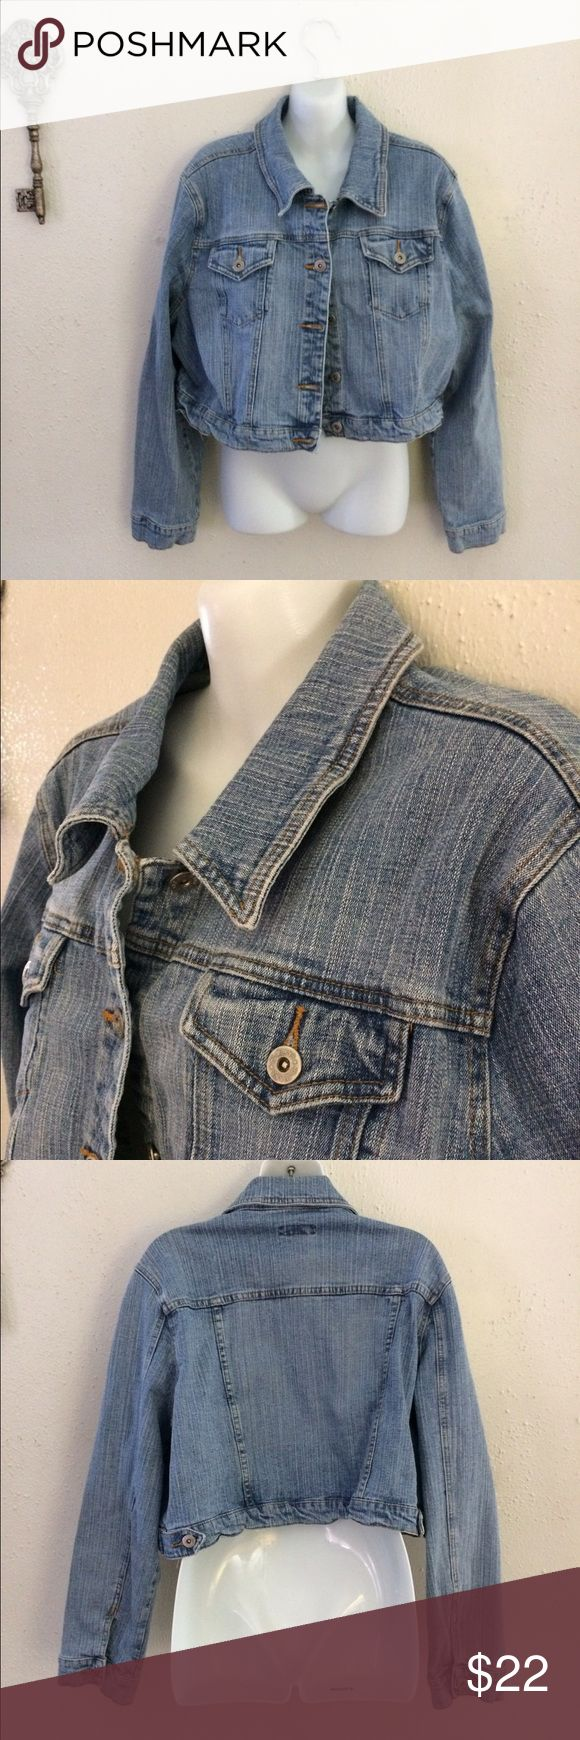 "Plus women's crop Jean jacket EUC Plus size women's crop Jean jacket! 20"" across chest laying flat x 16.5"" from shoulder to bottom and 23.5"" sleeve length HI-Jeans Jackets & Coats Jean Jackets"